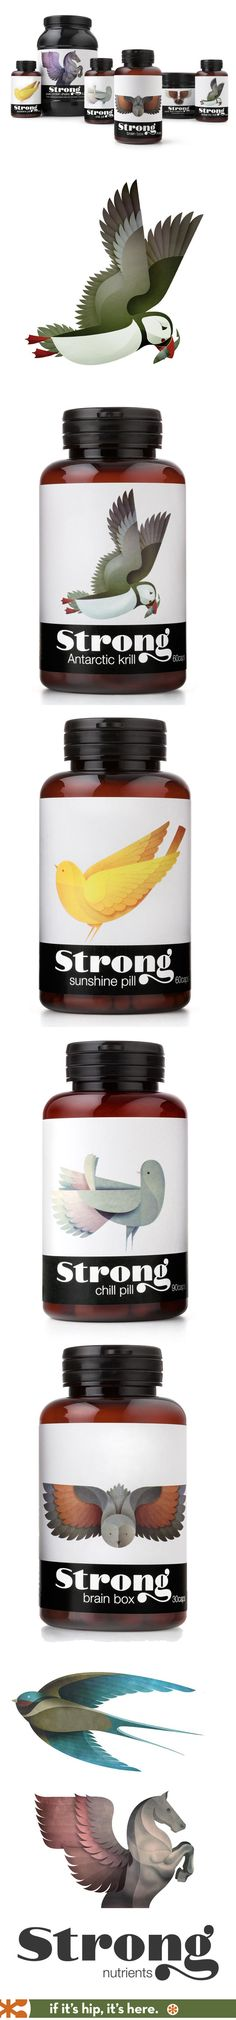 Strong Nutrients new line of supplements has beautifully illustrated labels by Andrew Lyons and branding by Pearlfisher PD